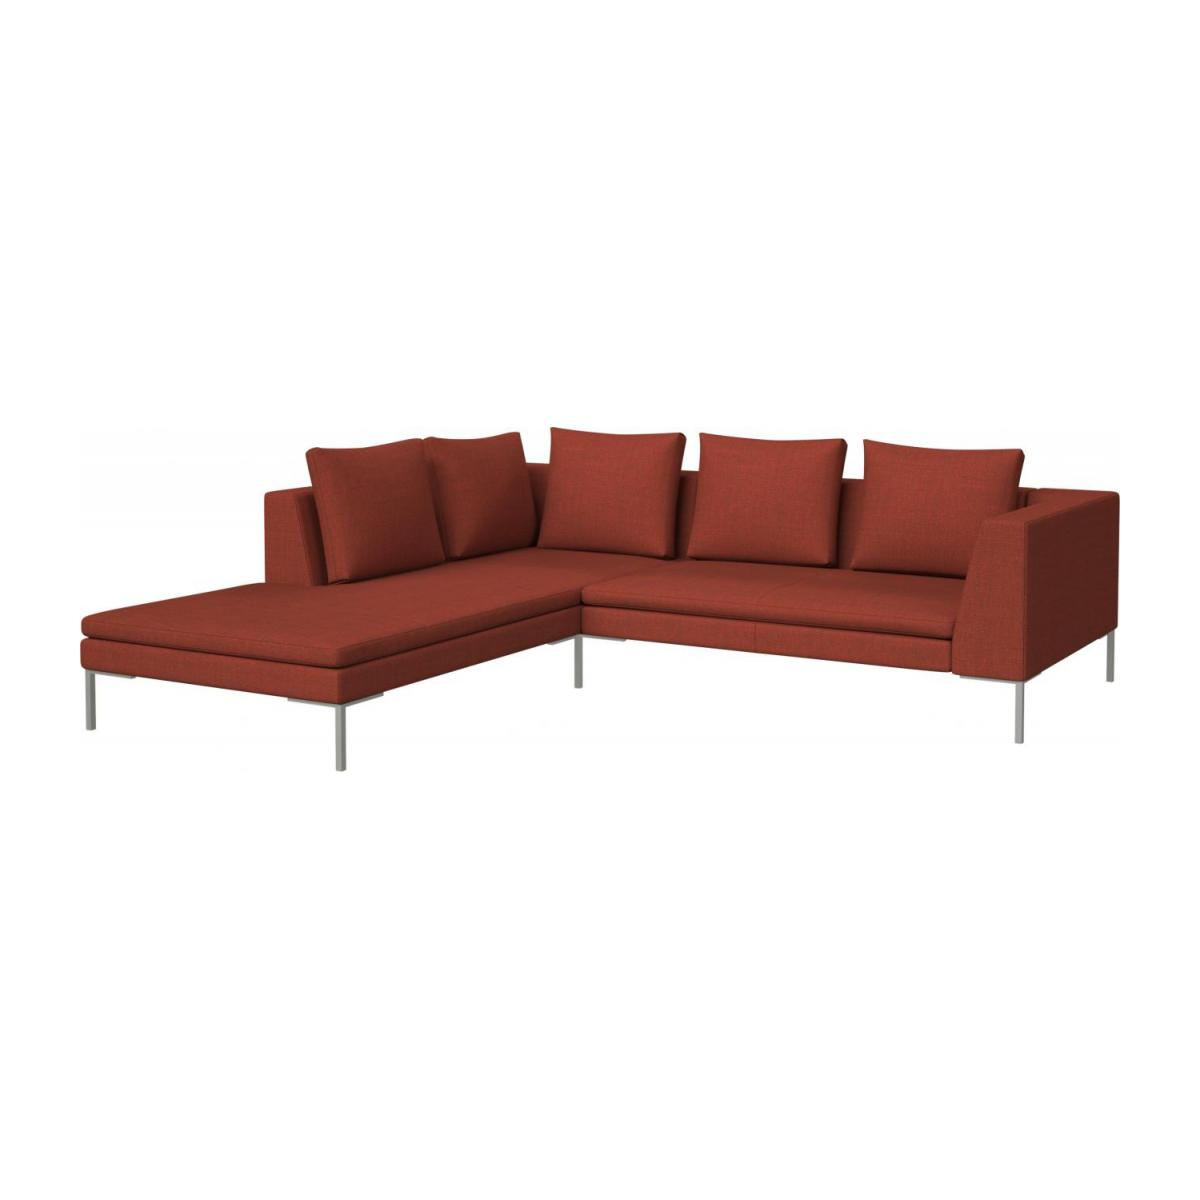 sofa w chaise tidafors bed dimensions montino 2 seater with longue on the left in fasoli fabric warm red rock